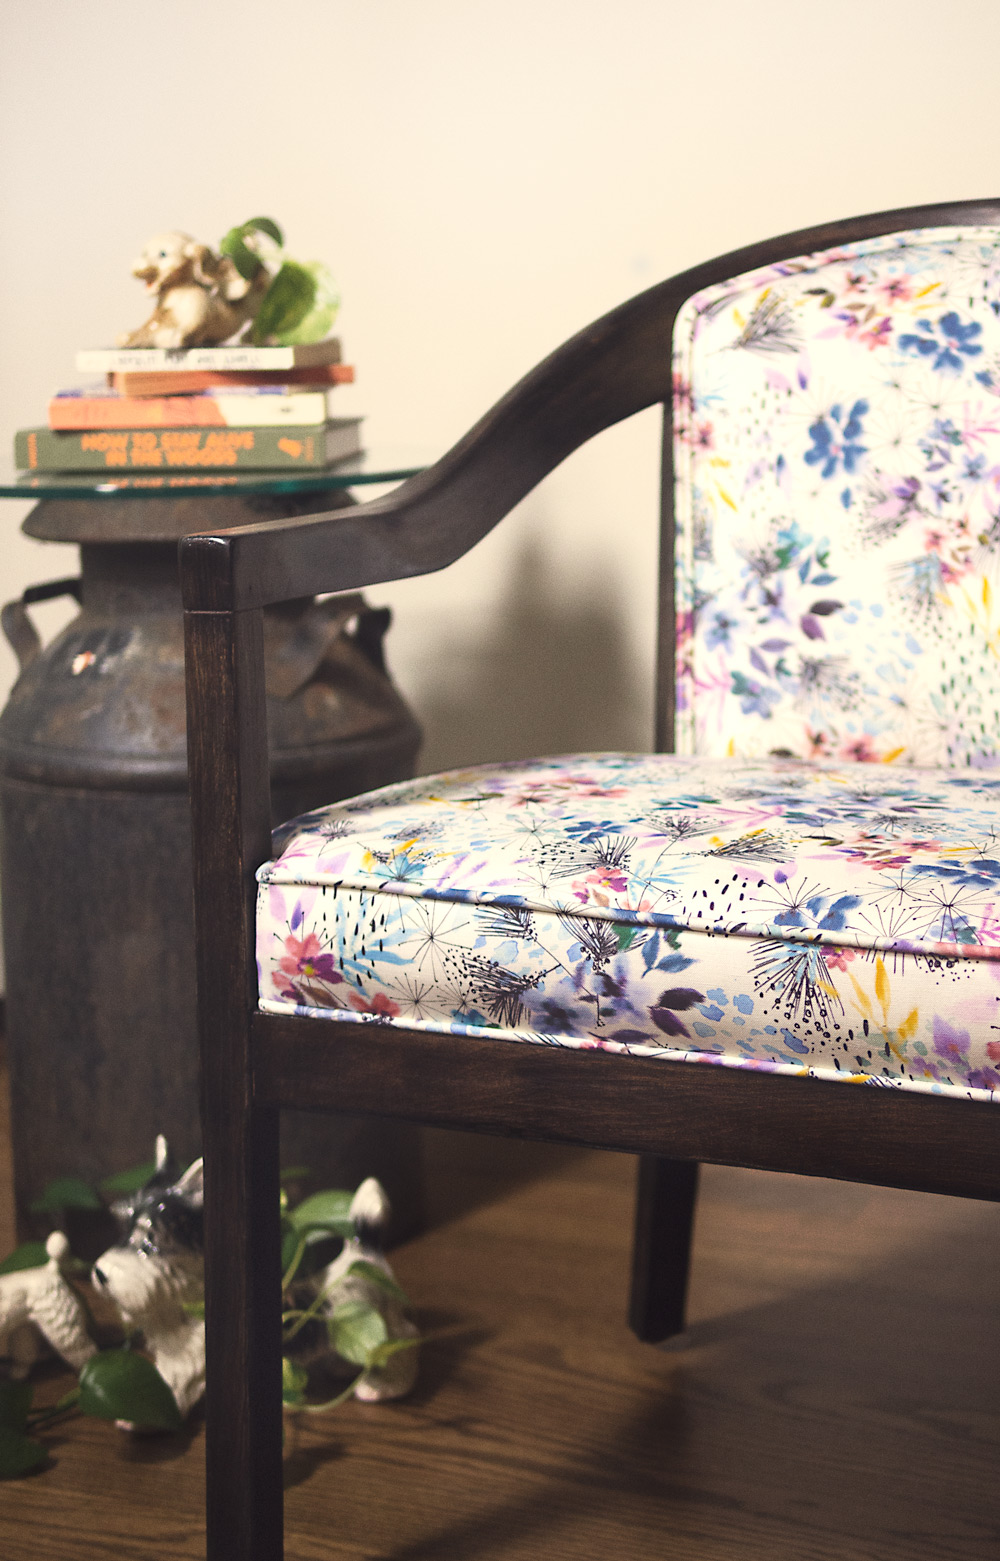 lillian farag - whimsy floral chair